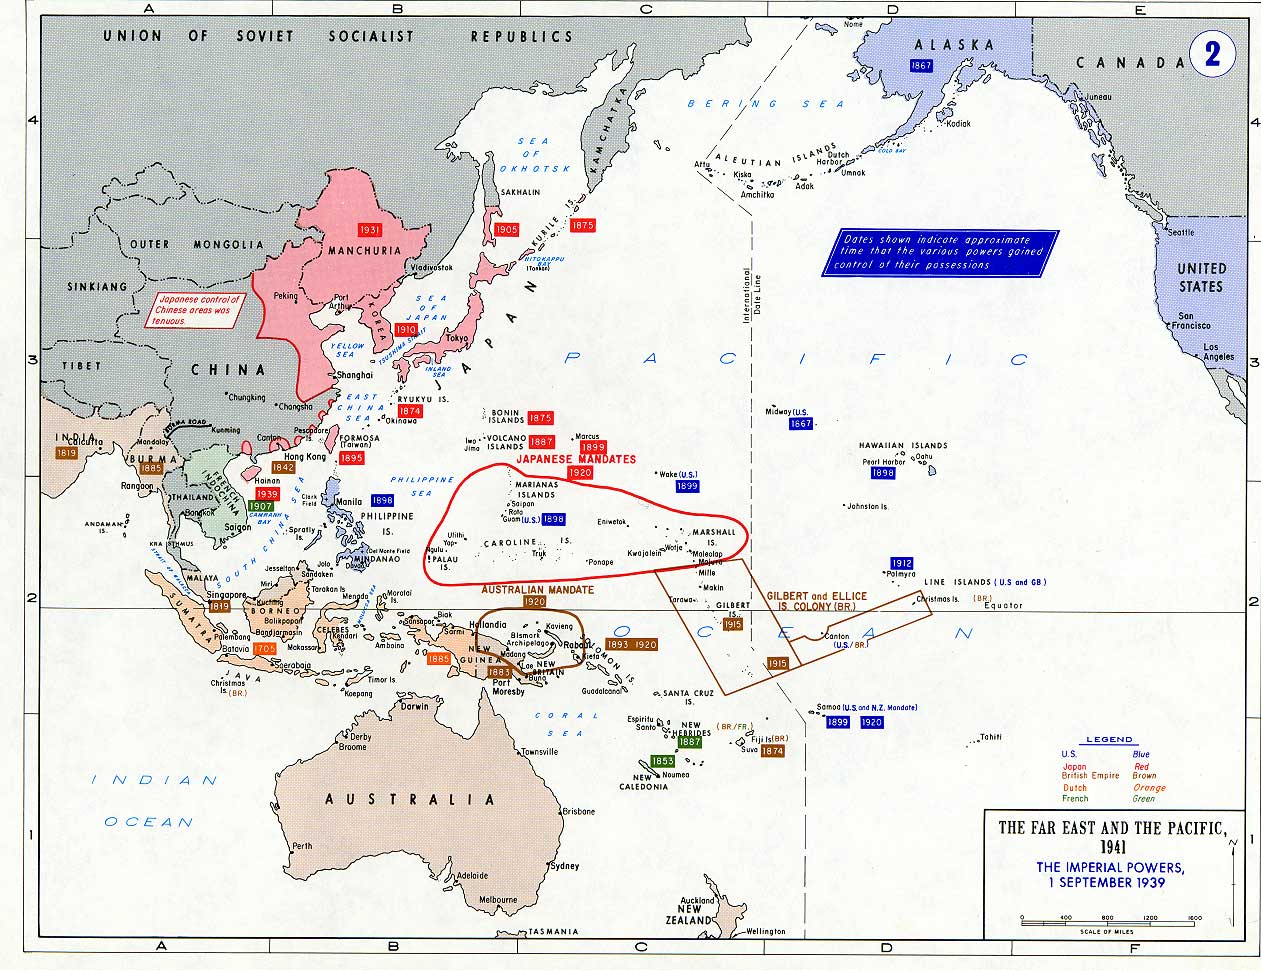 General Maps About the Far East and the Pacific During The WW II